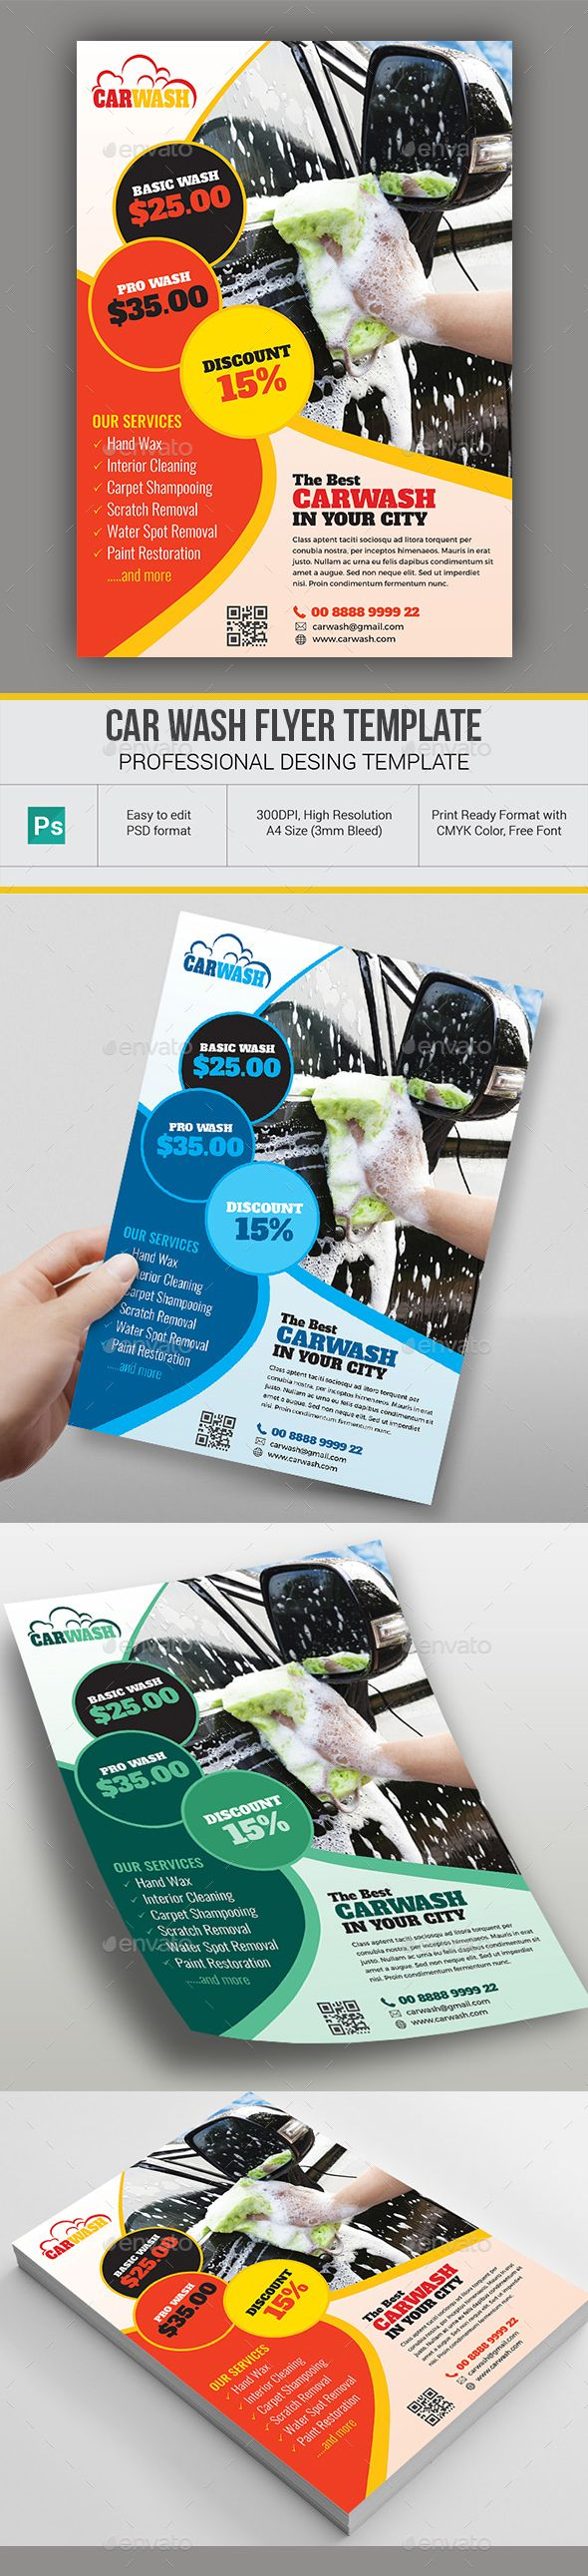 car wash flyer templates flyer template cars and flyers car wash flyer templates photoshop psd repair station car wash